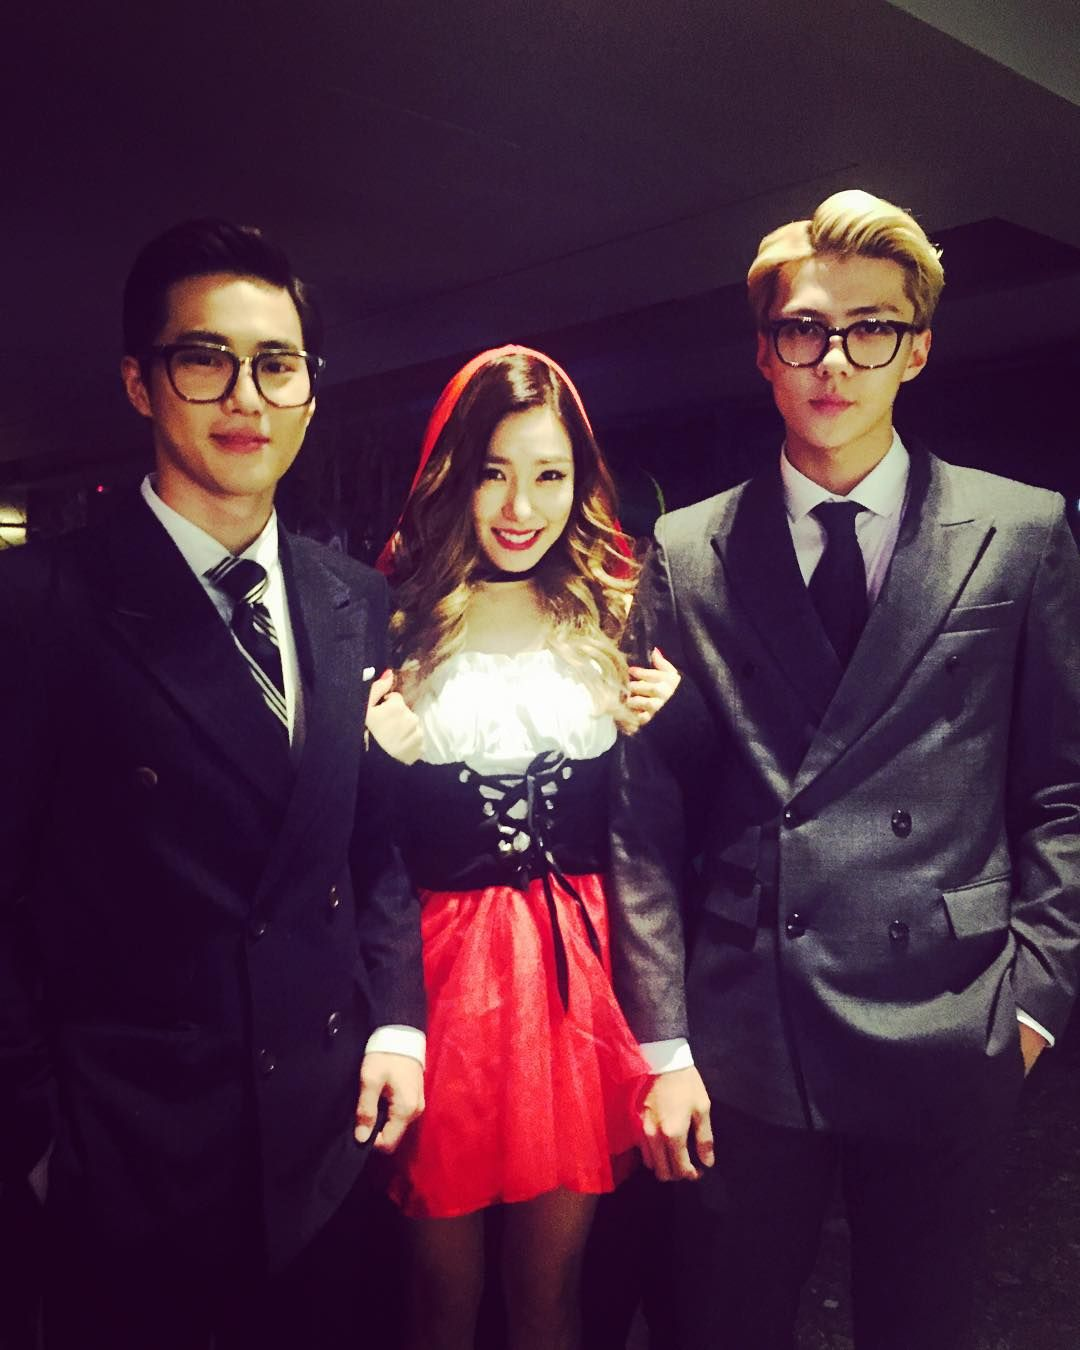 SM Halloween Party 151029 : SMTOWN WONDERLAND - Suho and Sehun in ...